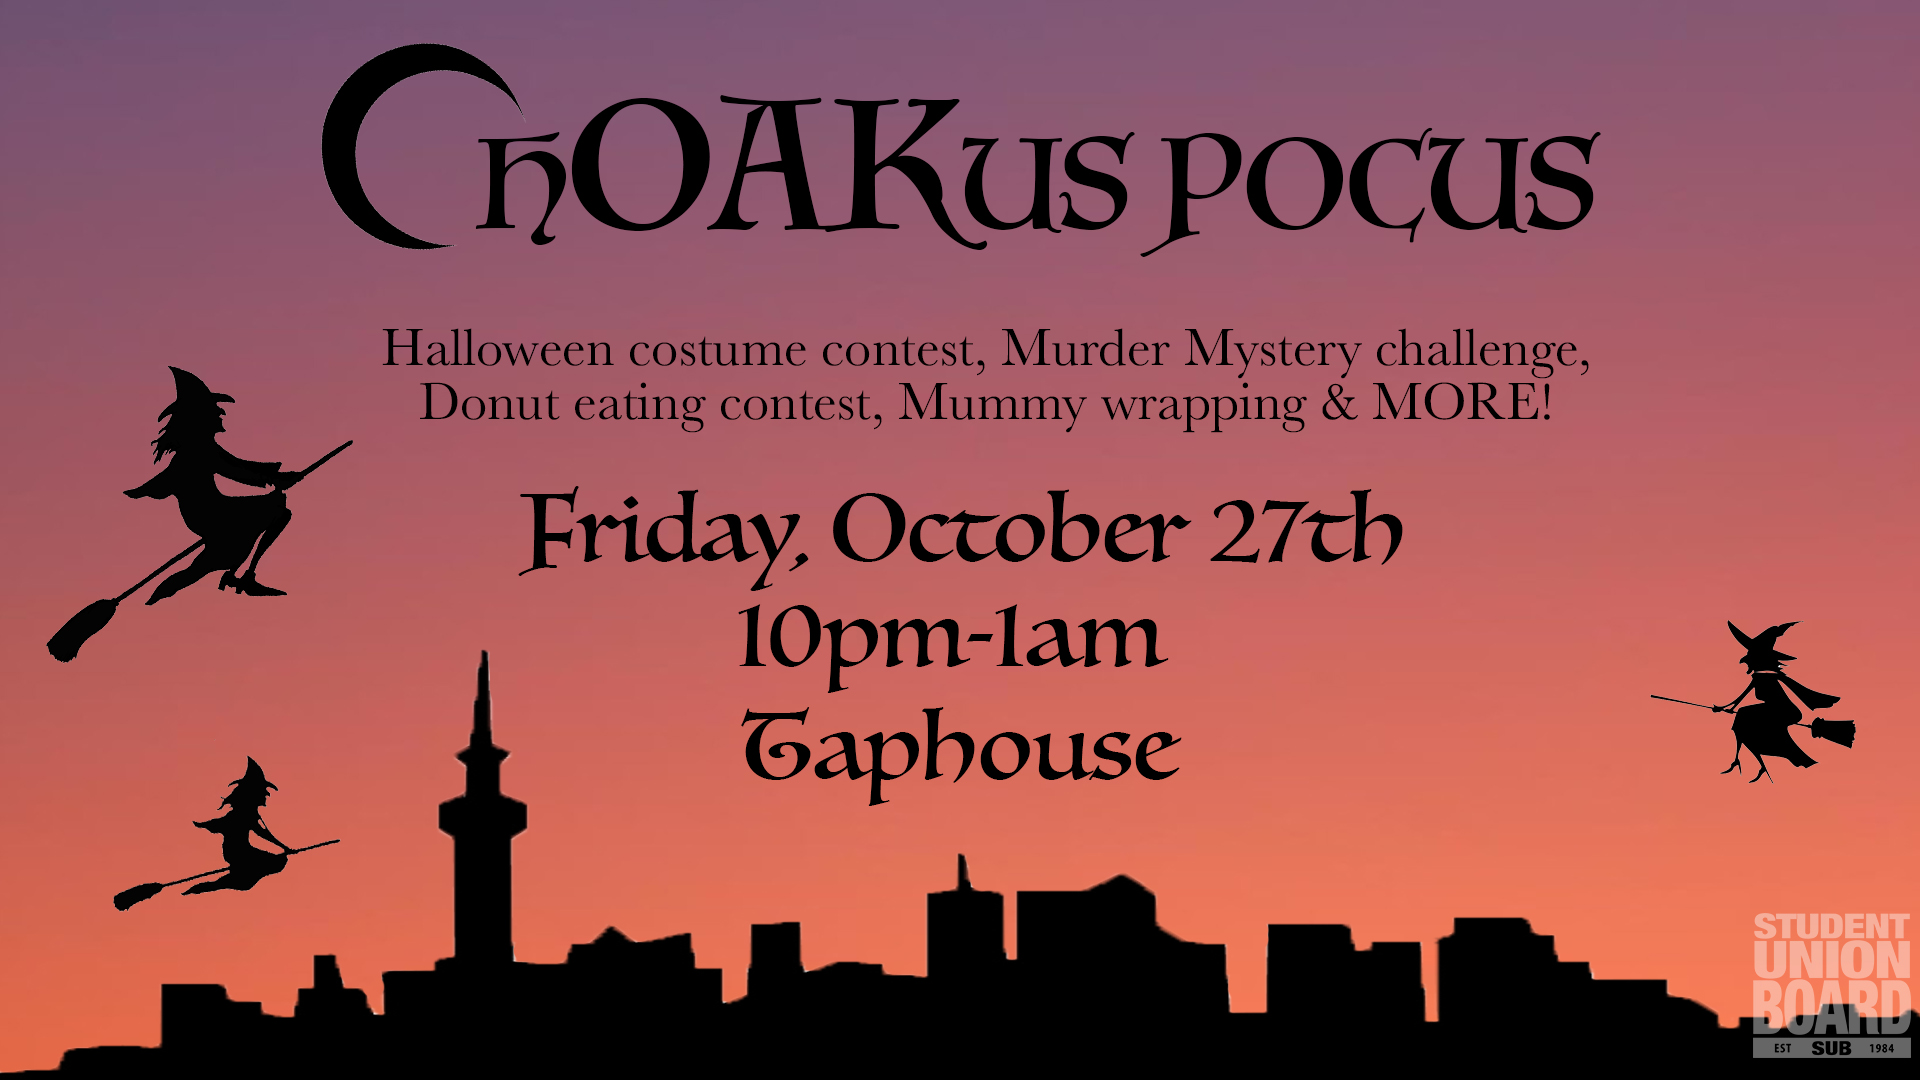 Participate in the real life clue game during the Friday of Halloween weekend at 10pm in Taphouse!